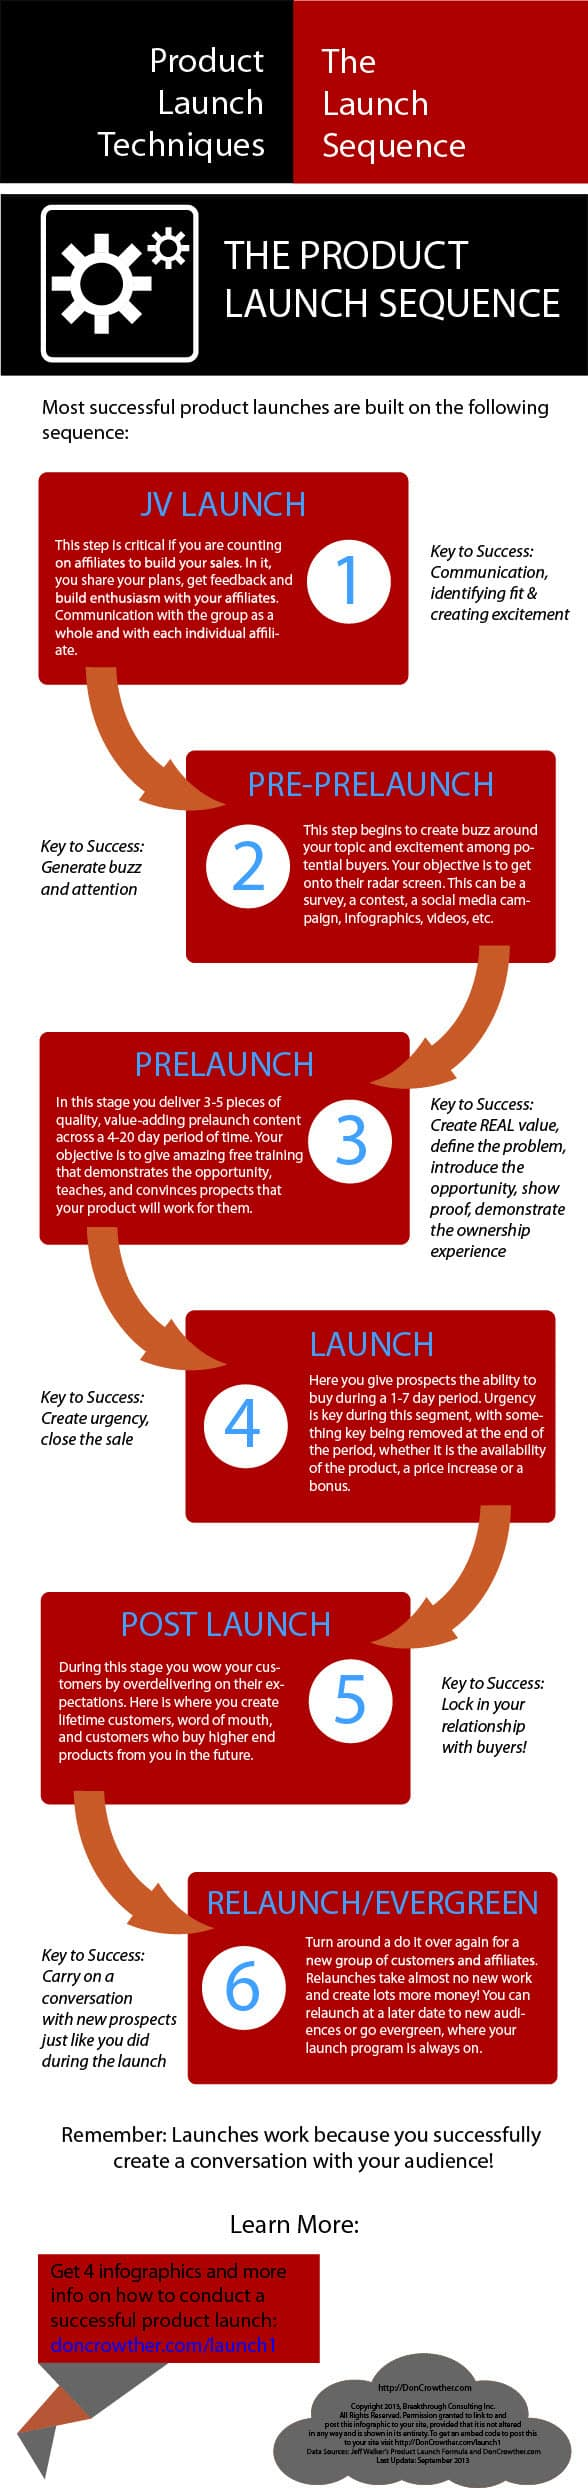 The Product Launch Sequence Infographic